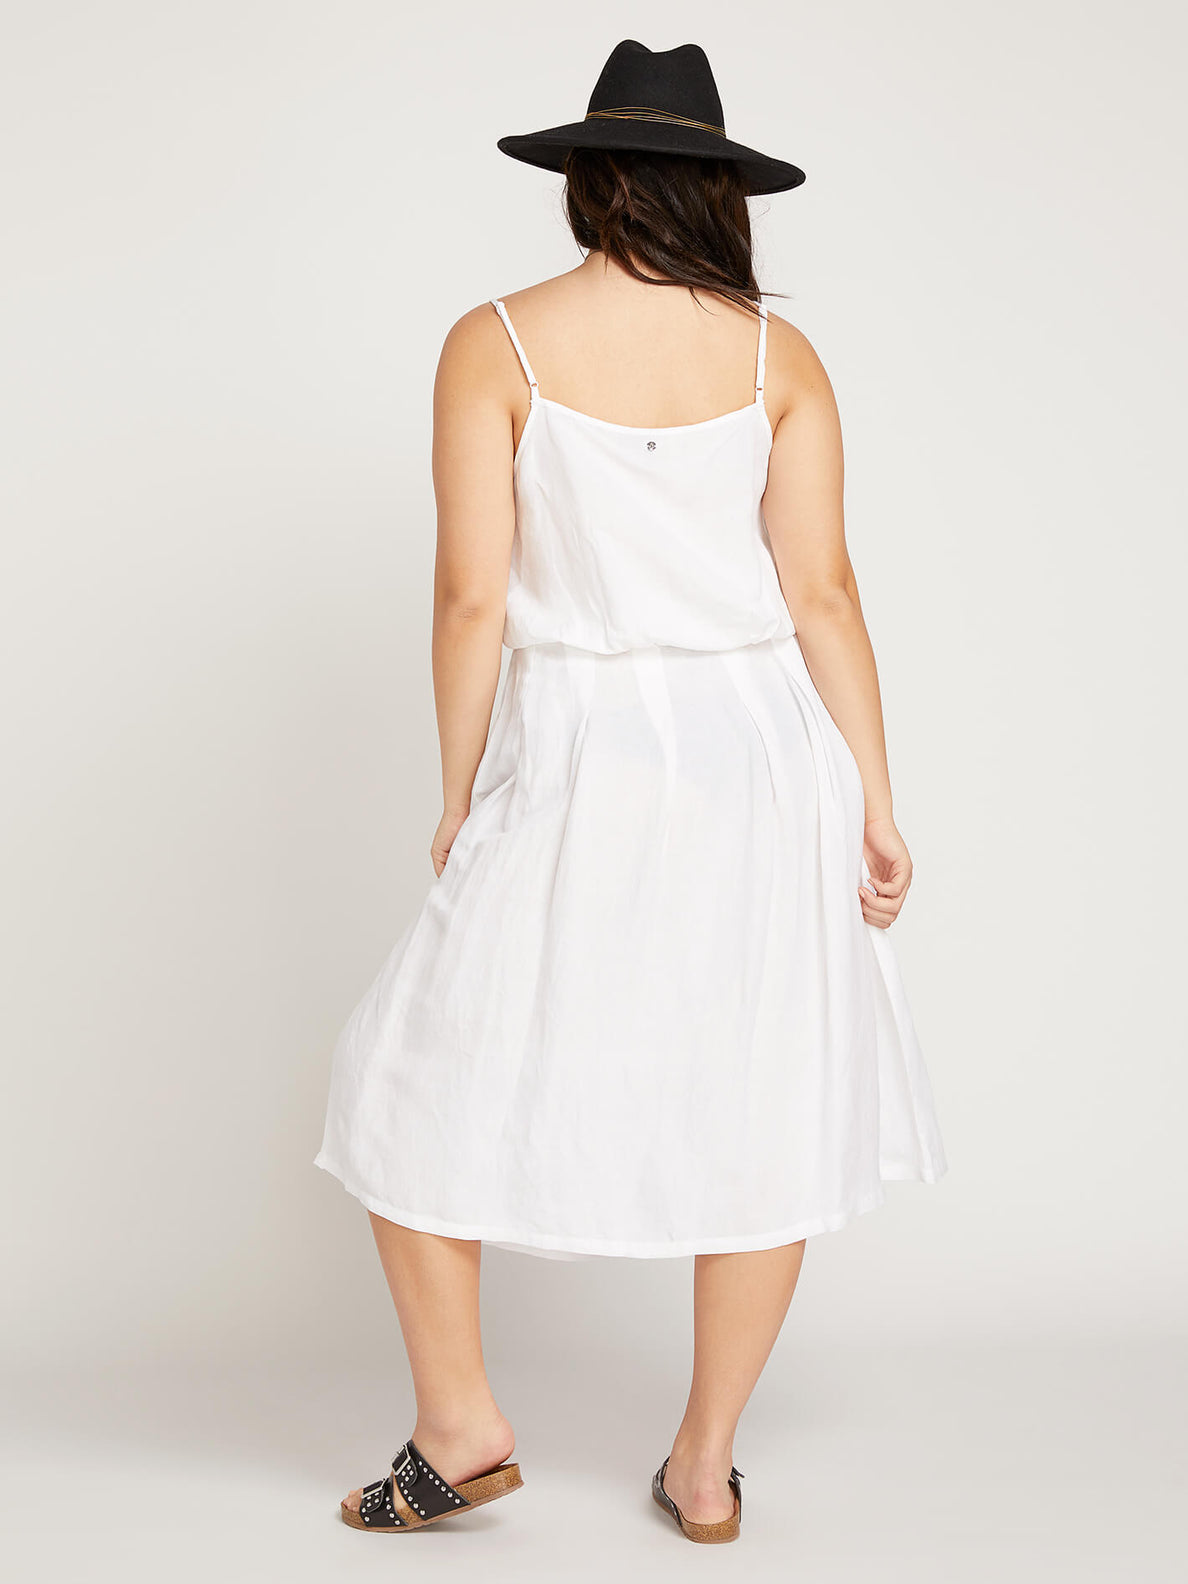 Deep Tracks Skirt In White, Back Extended Size View